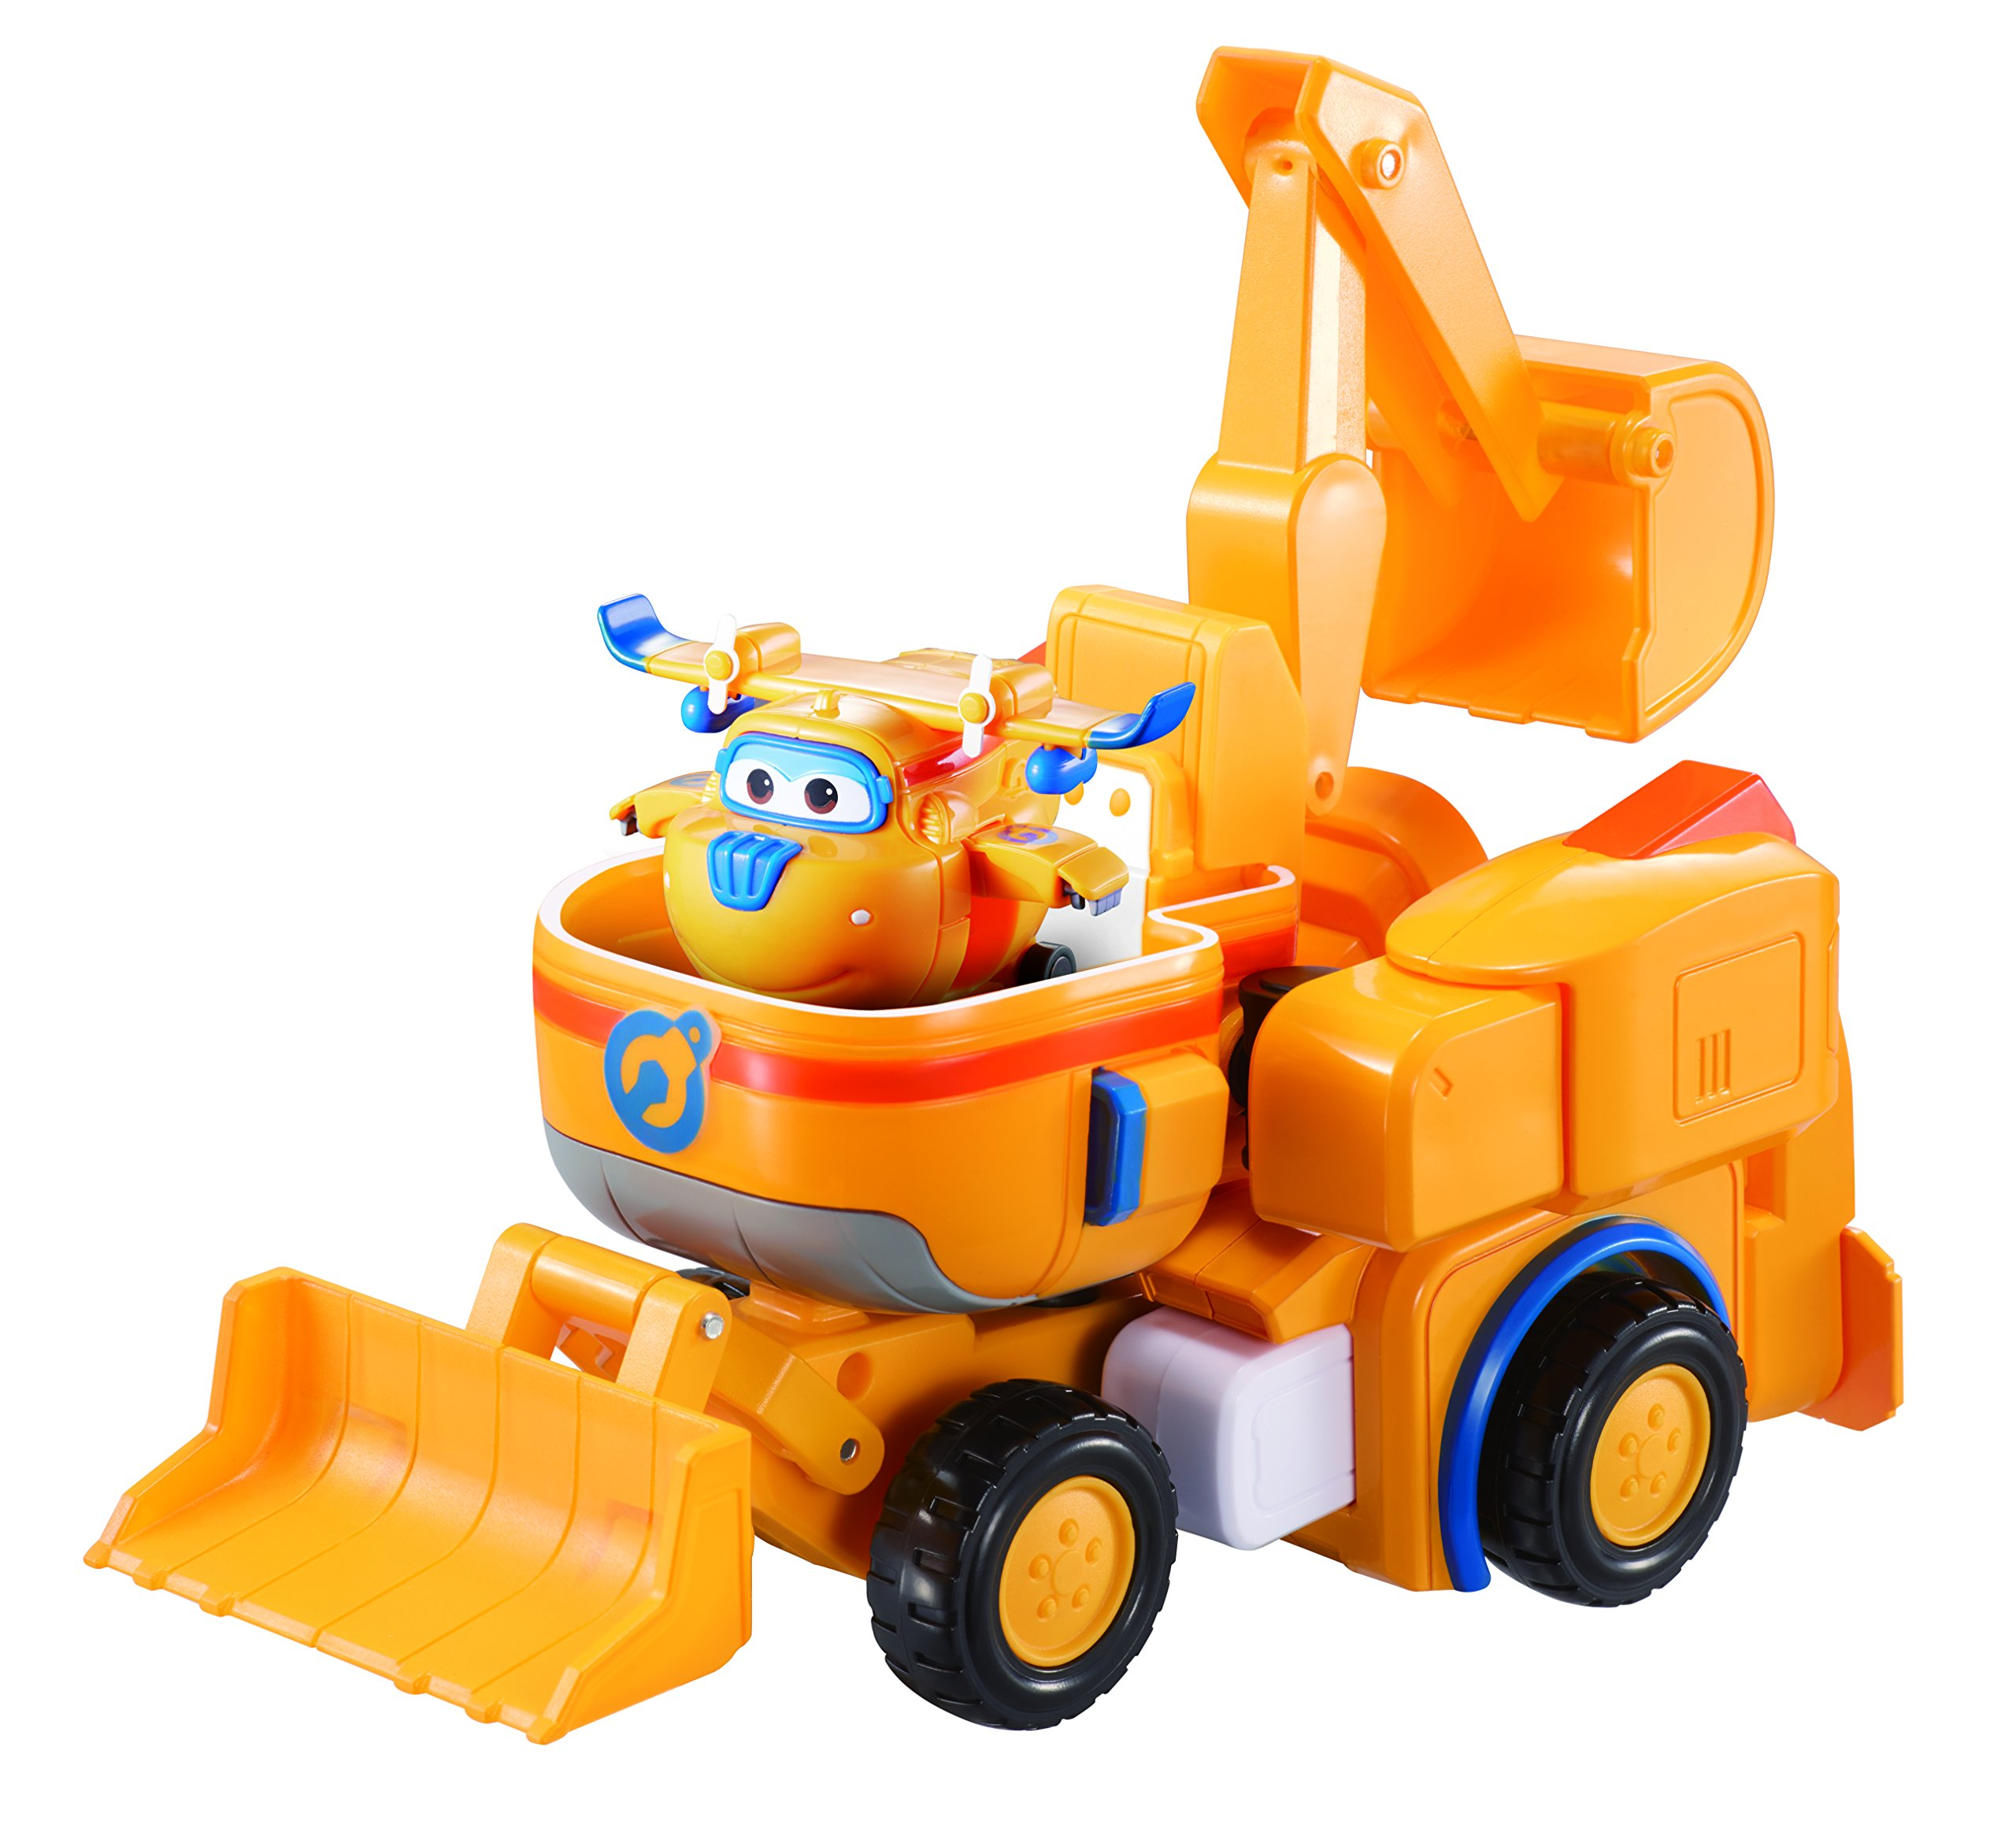 Super Wings - - Dozer | Toy Vehicle Set |, Includes Transform-a-Bot Donnie Figure | 2'' Scale